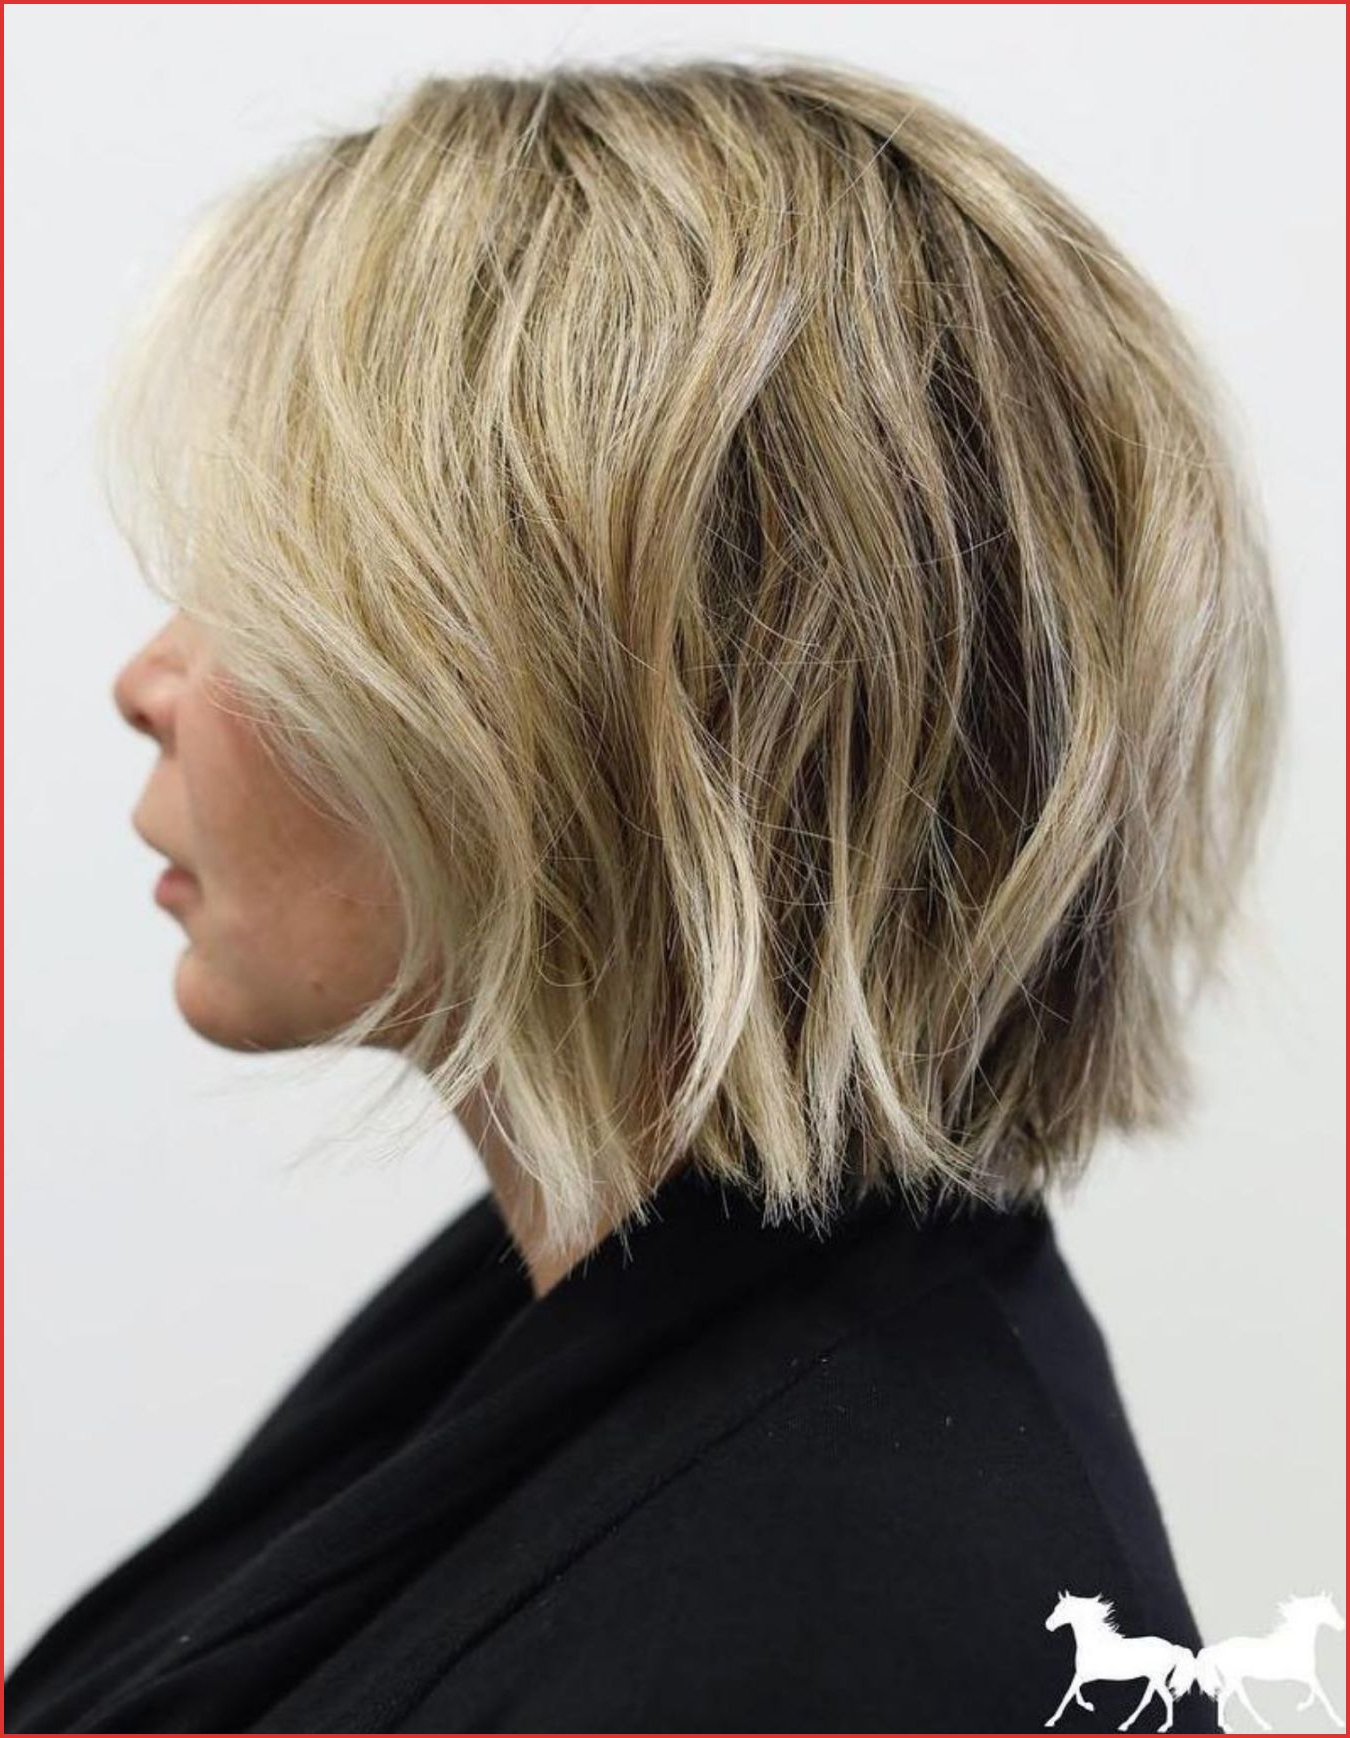 Tousled Hairstyles 4211 70 Fabulous Choppy Bob Hairstyles Pinterest Throughout Well Known Layered Tousled Bob Hairstyles (View 18 of 20)